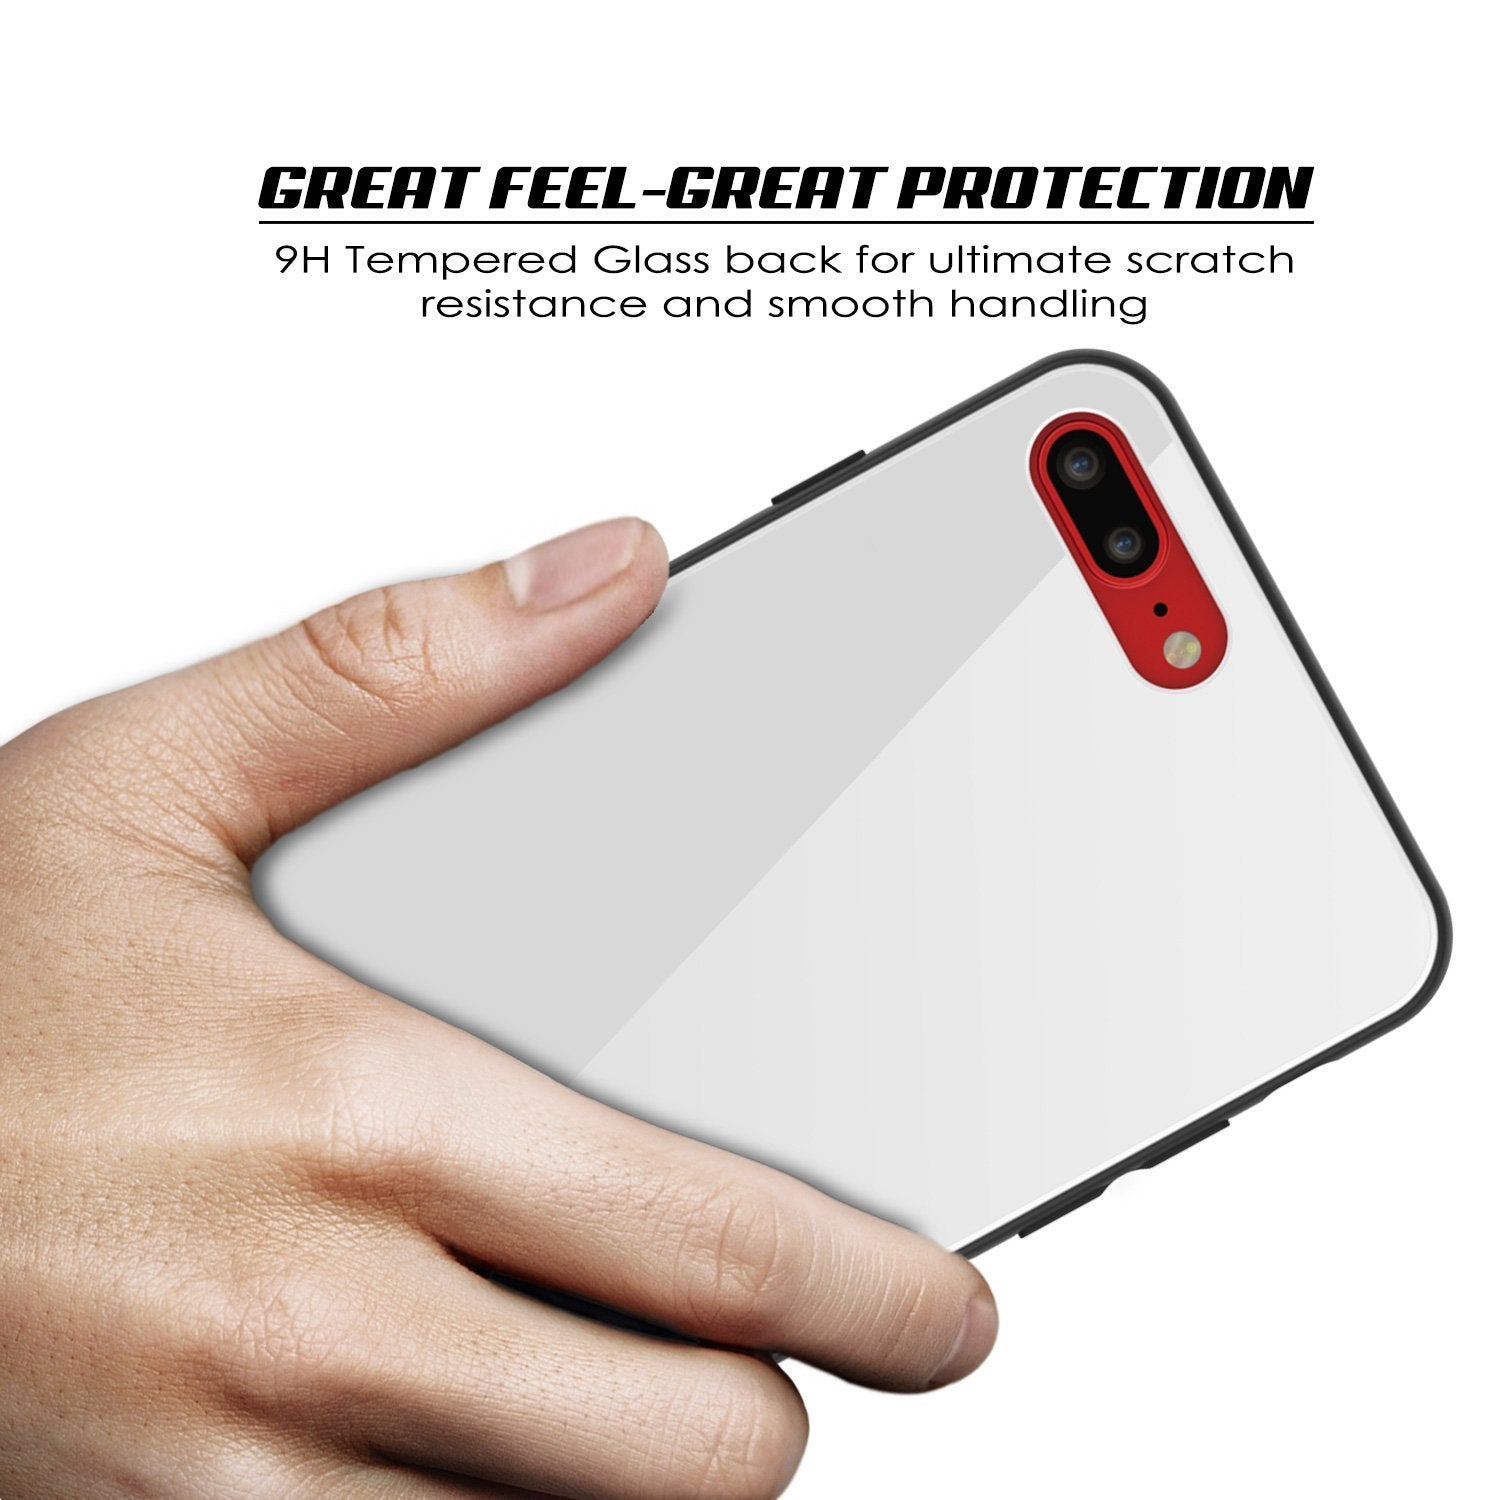 iPhone 8 PLUS Case, Punkcase GlassShield Ultra Thin Protective 9H Full Body Tempered Glass Cover W/ Drop Protection & Non Slip Grip for Apple iPhone 7 PLUS / Apple iPhone 8 PLUS (White)